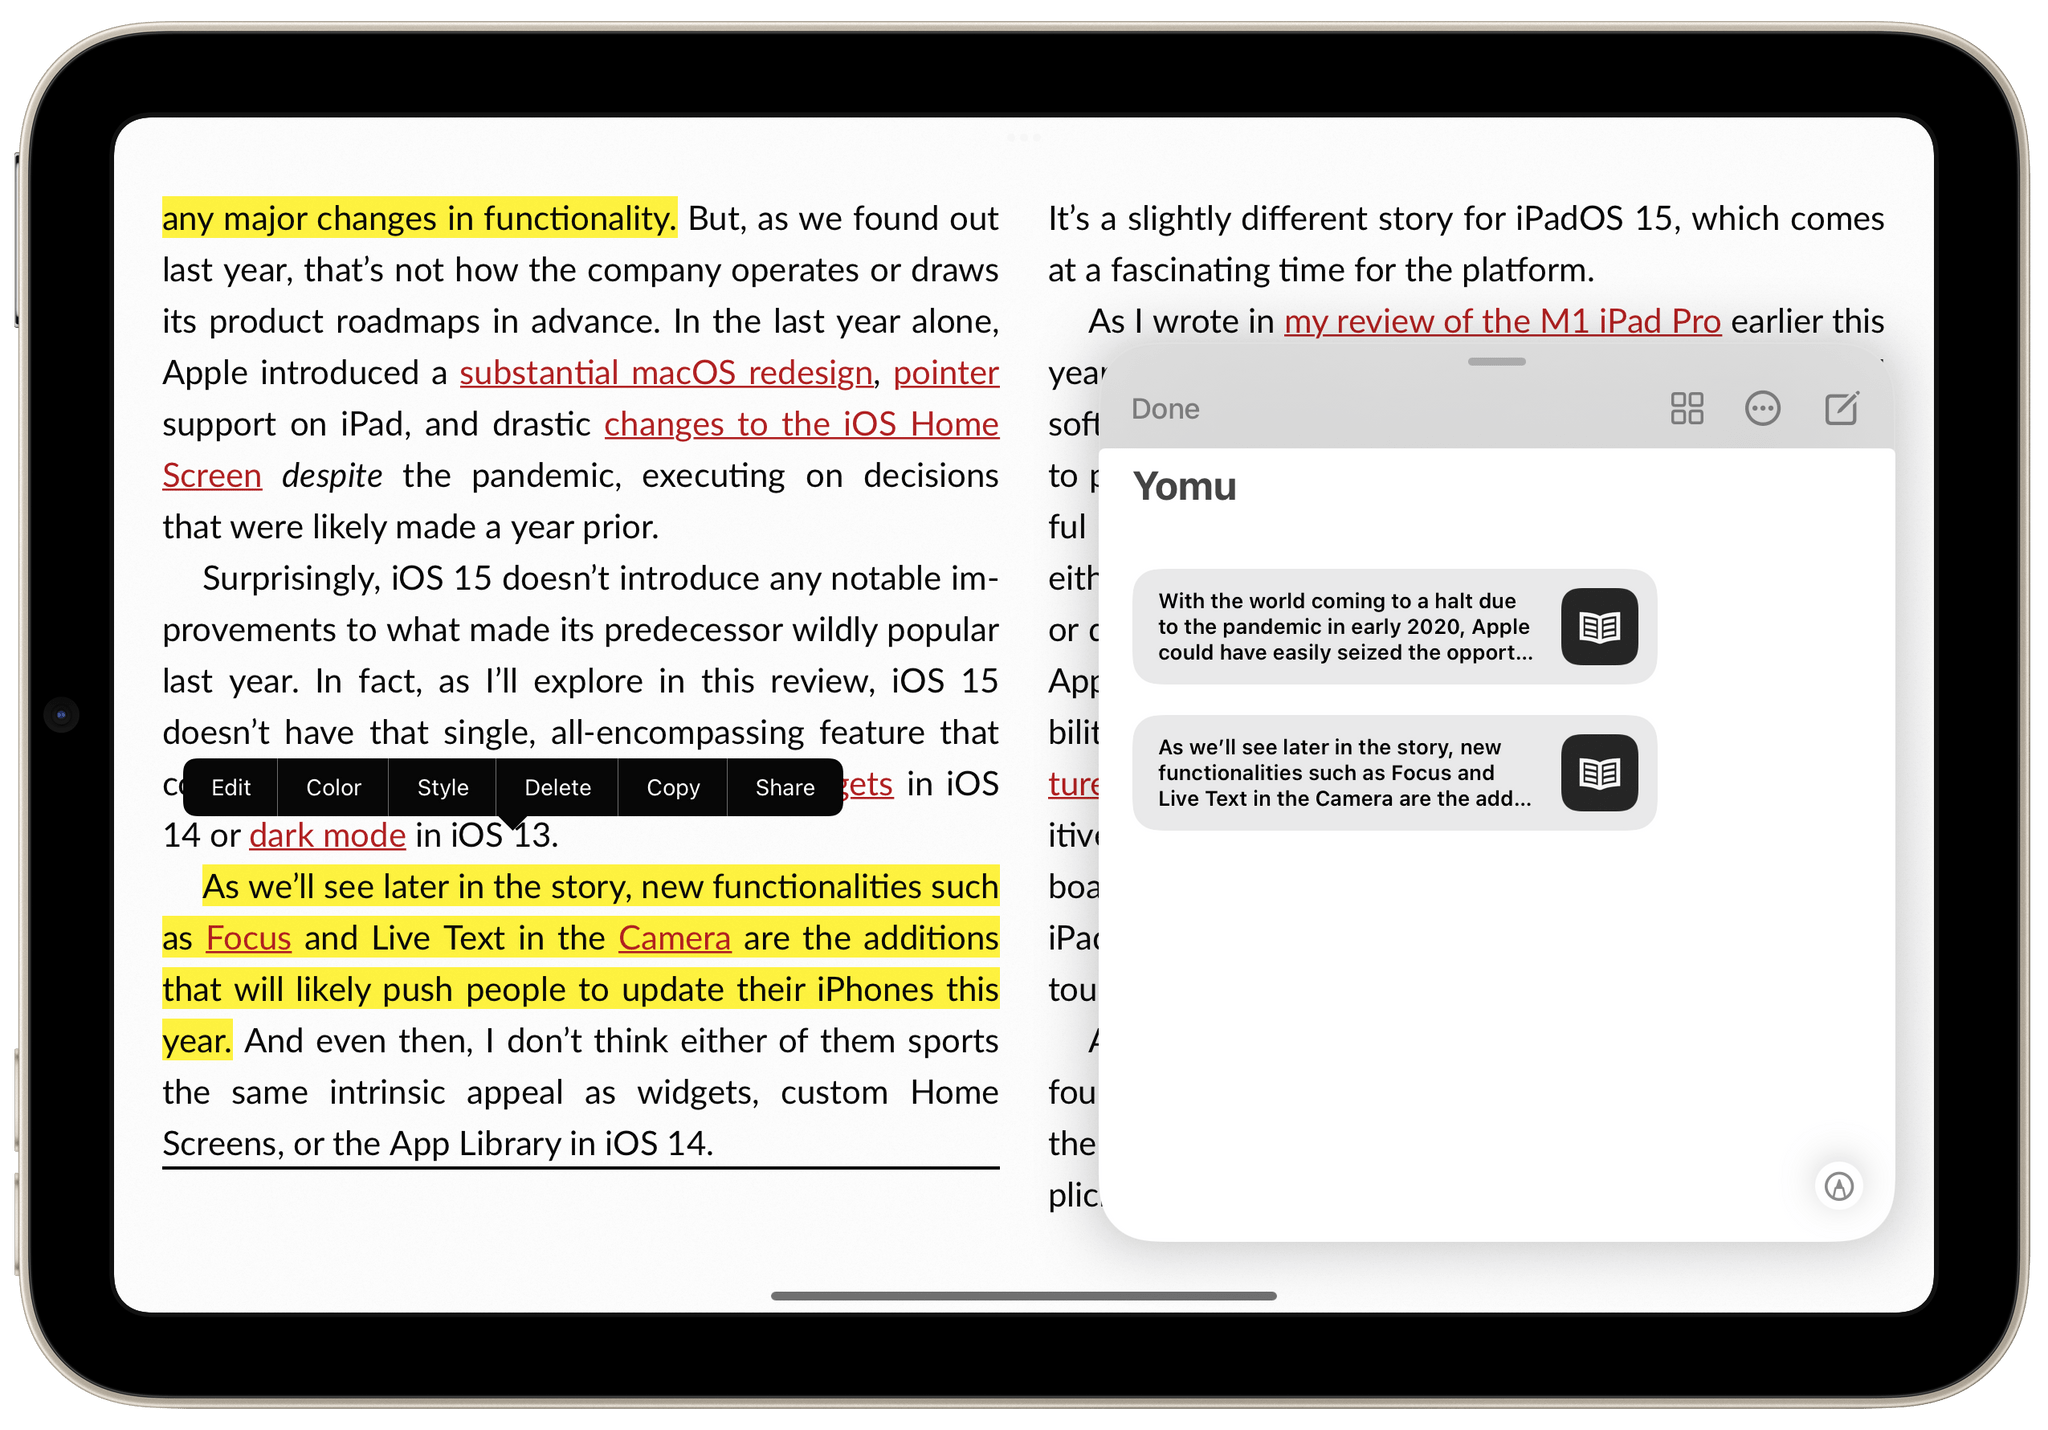 With Yomu, you can save annotations from eBooks as deeplinks in Quick Note. It's perfect for the iPad mini.